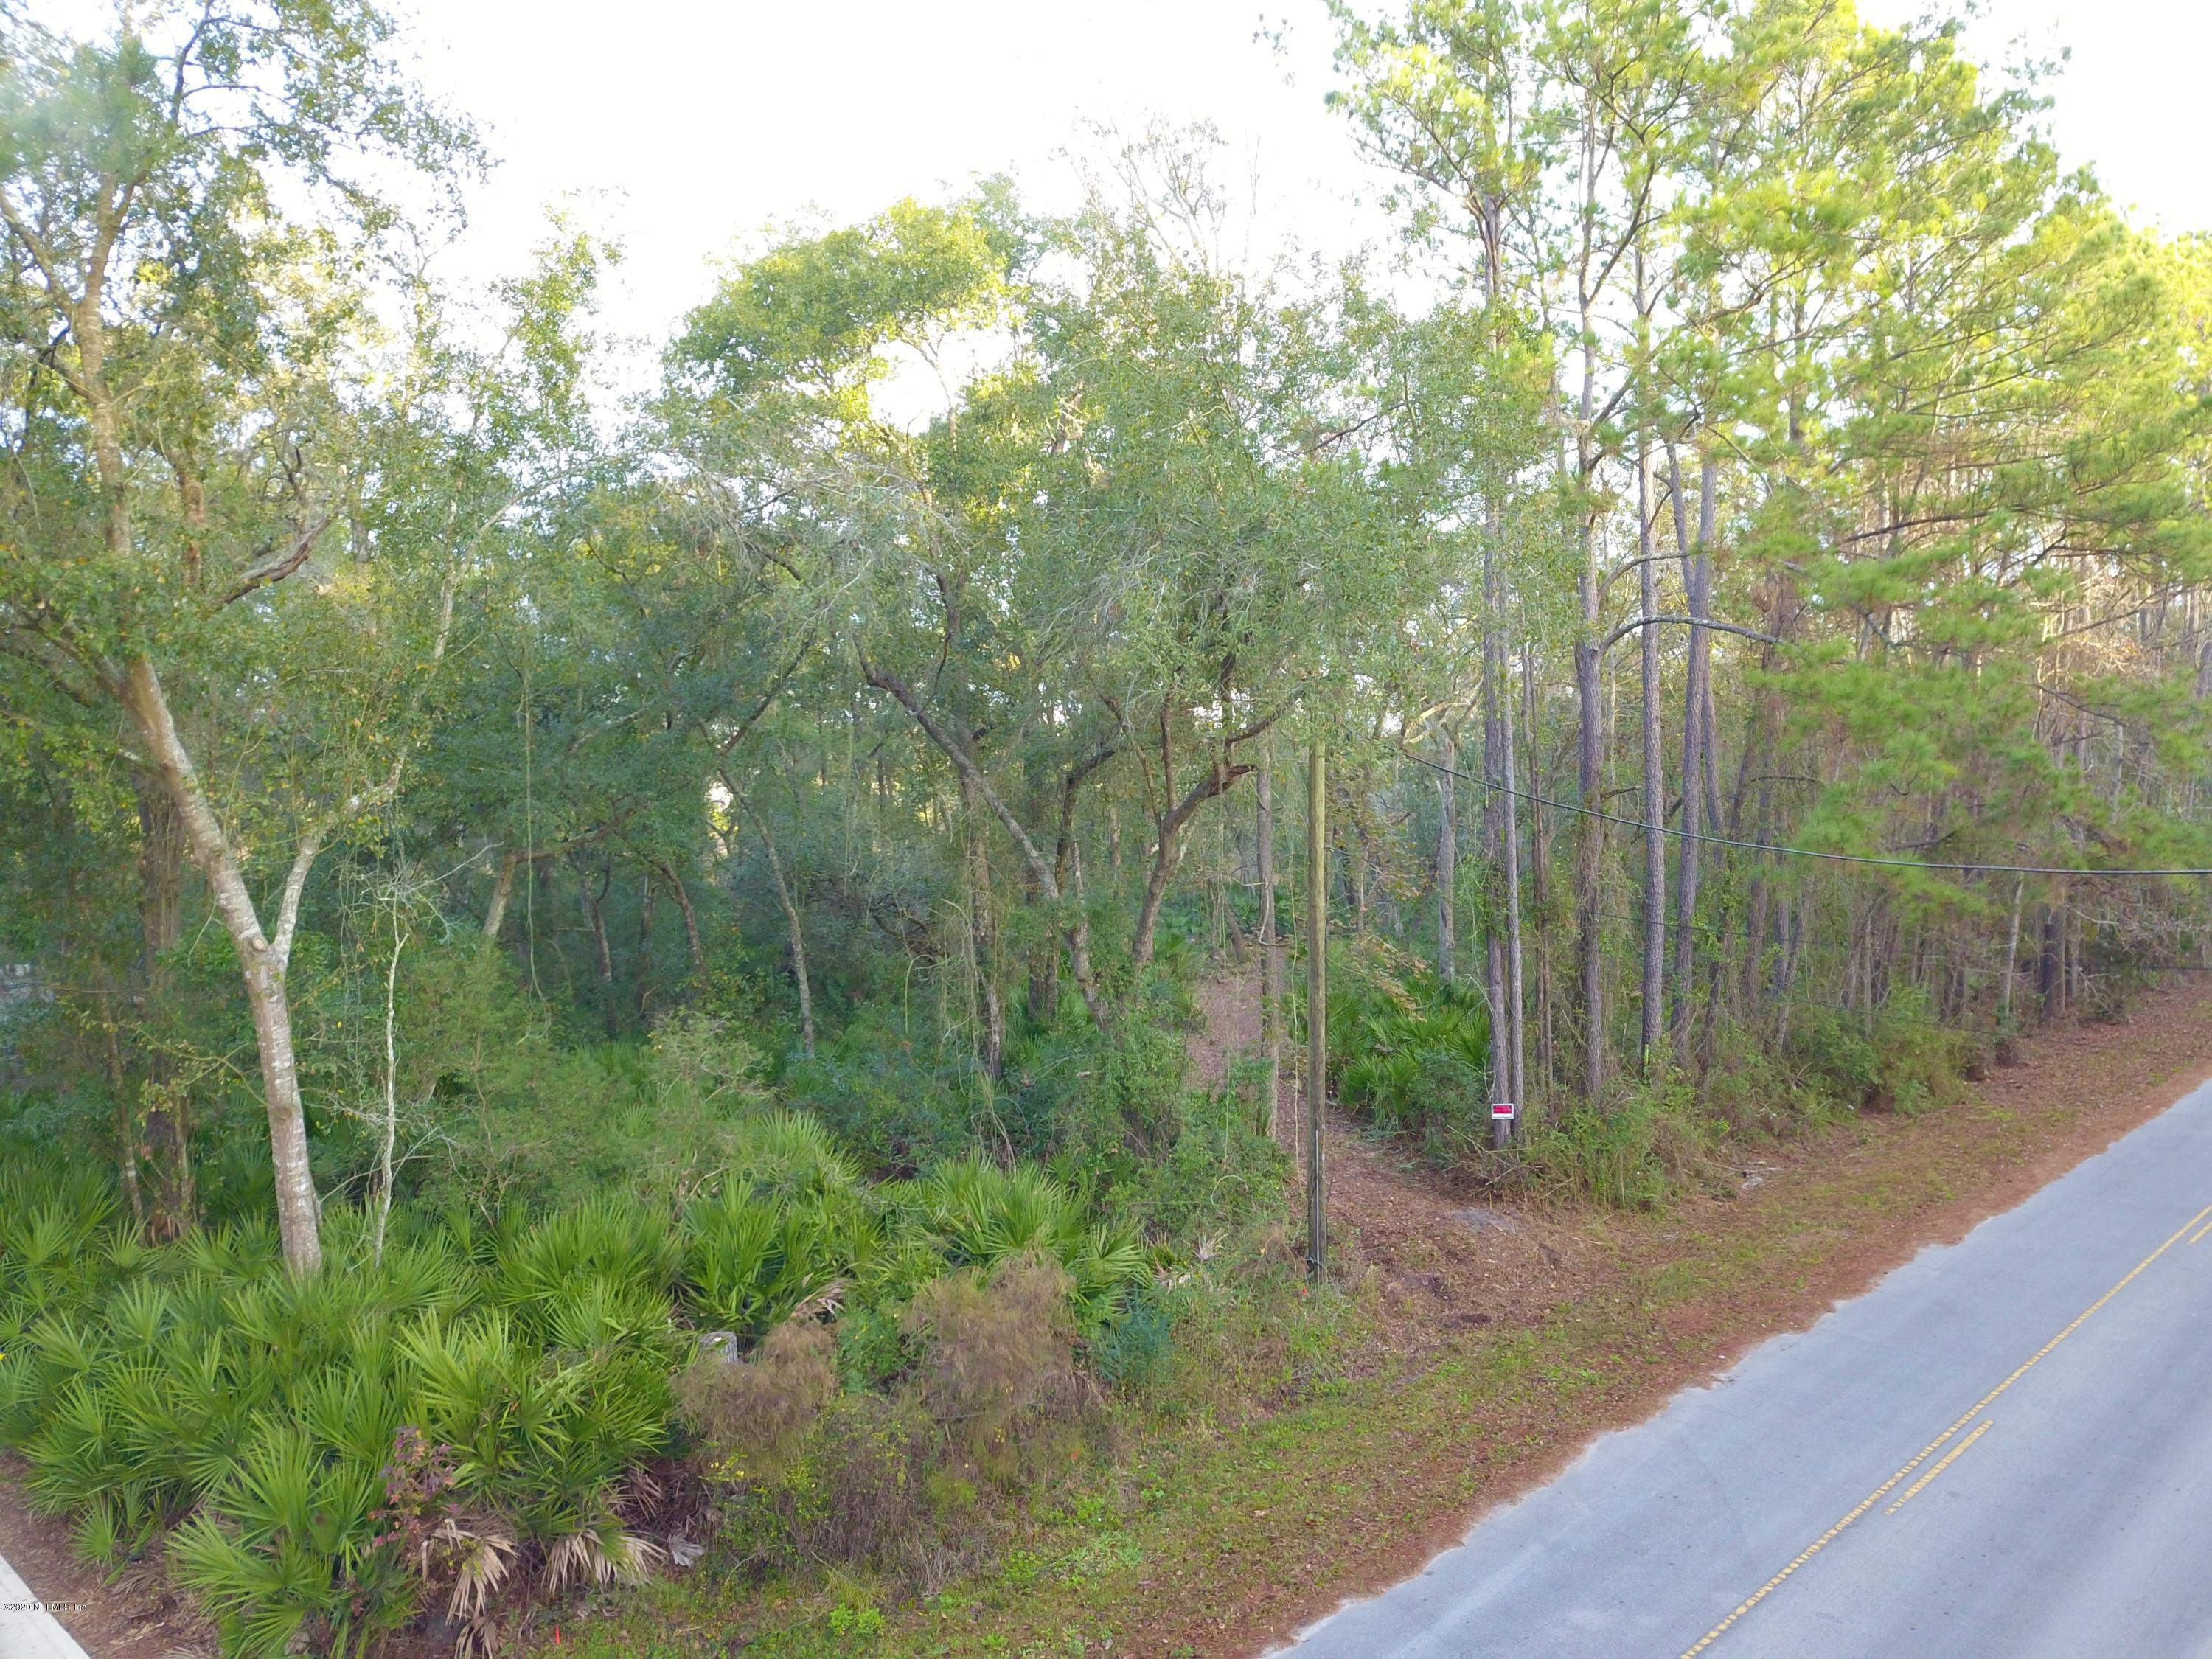 0 CREATIVE, JACKSONVILLE, FLORIDA 32218, ,Vacant land,For sale,CREATIVE,1040296